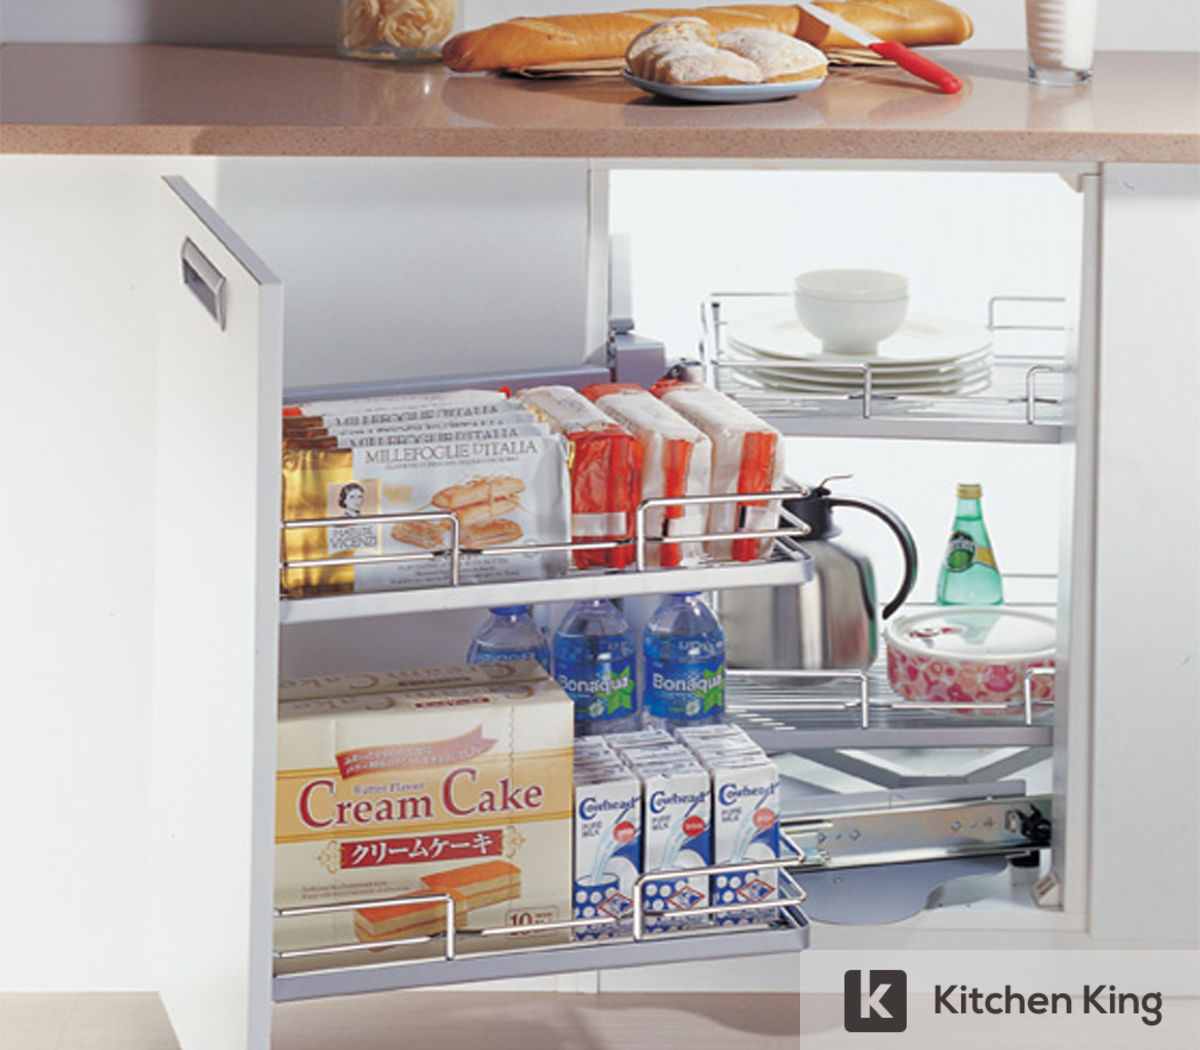 Kitchen Accessories: Kitchen Accessories, Kitchen Cabinet Pull Out In Dubai, UAE